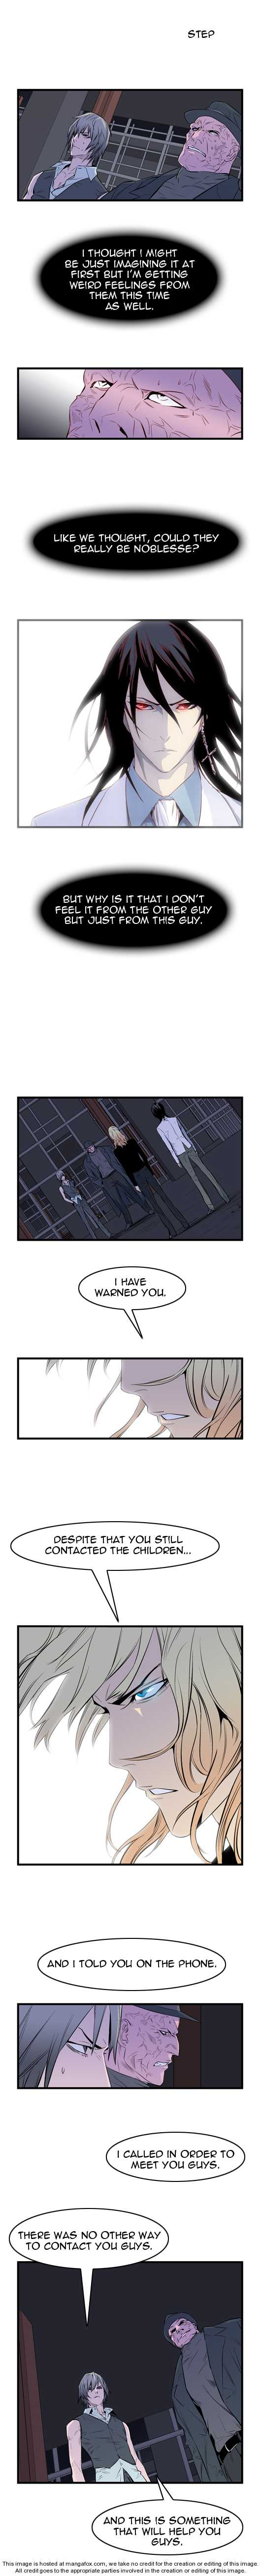 Noblesse 54 Page 2